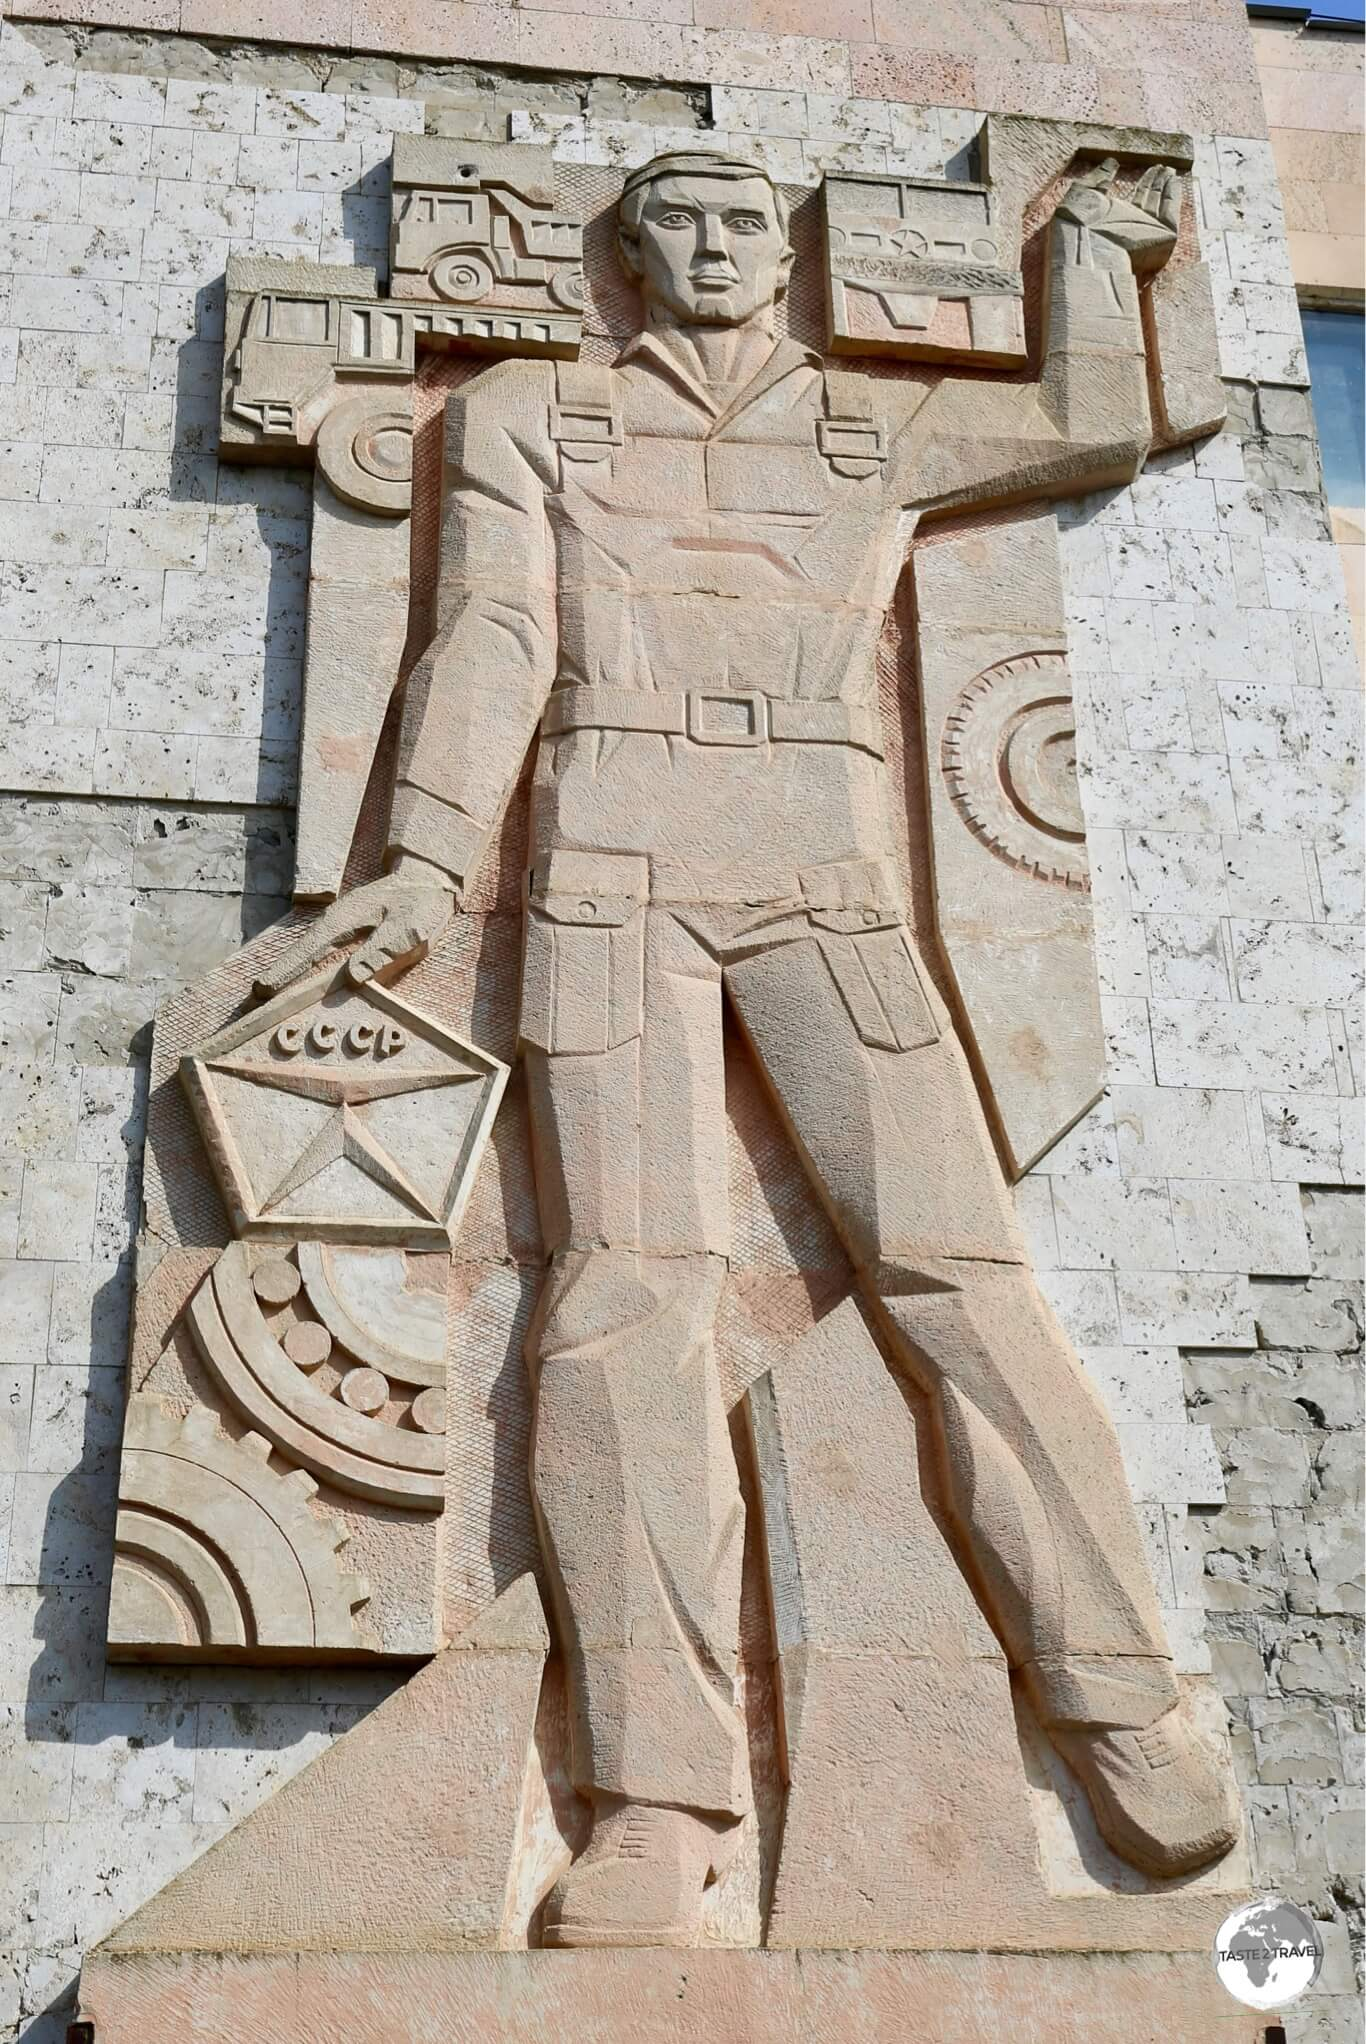 An incredible 'CCCP' stone mosaic on the wall of a factory in Bender.